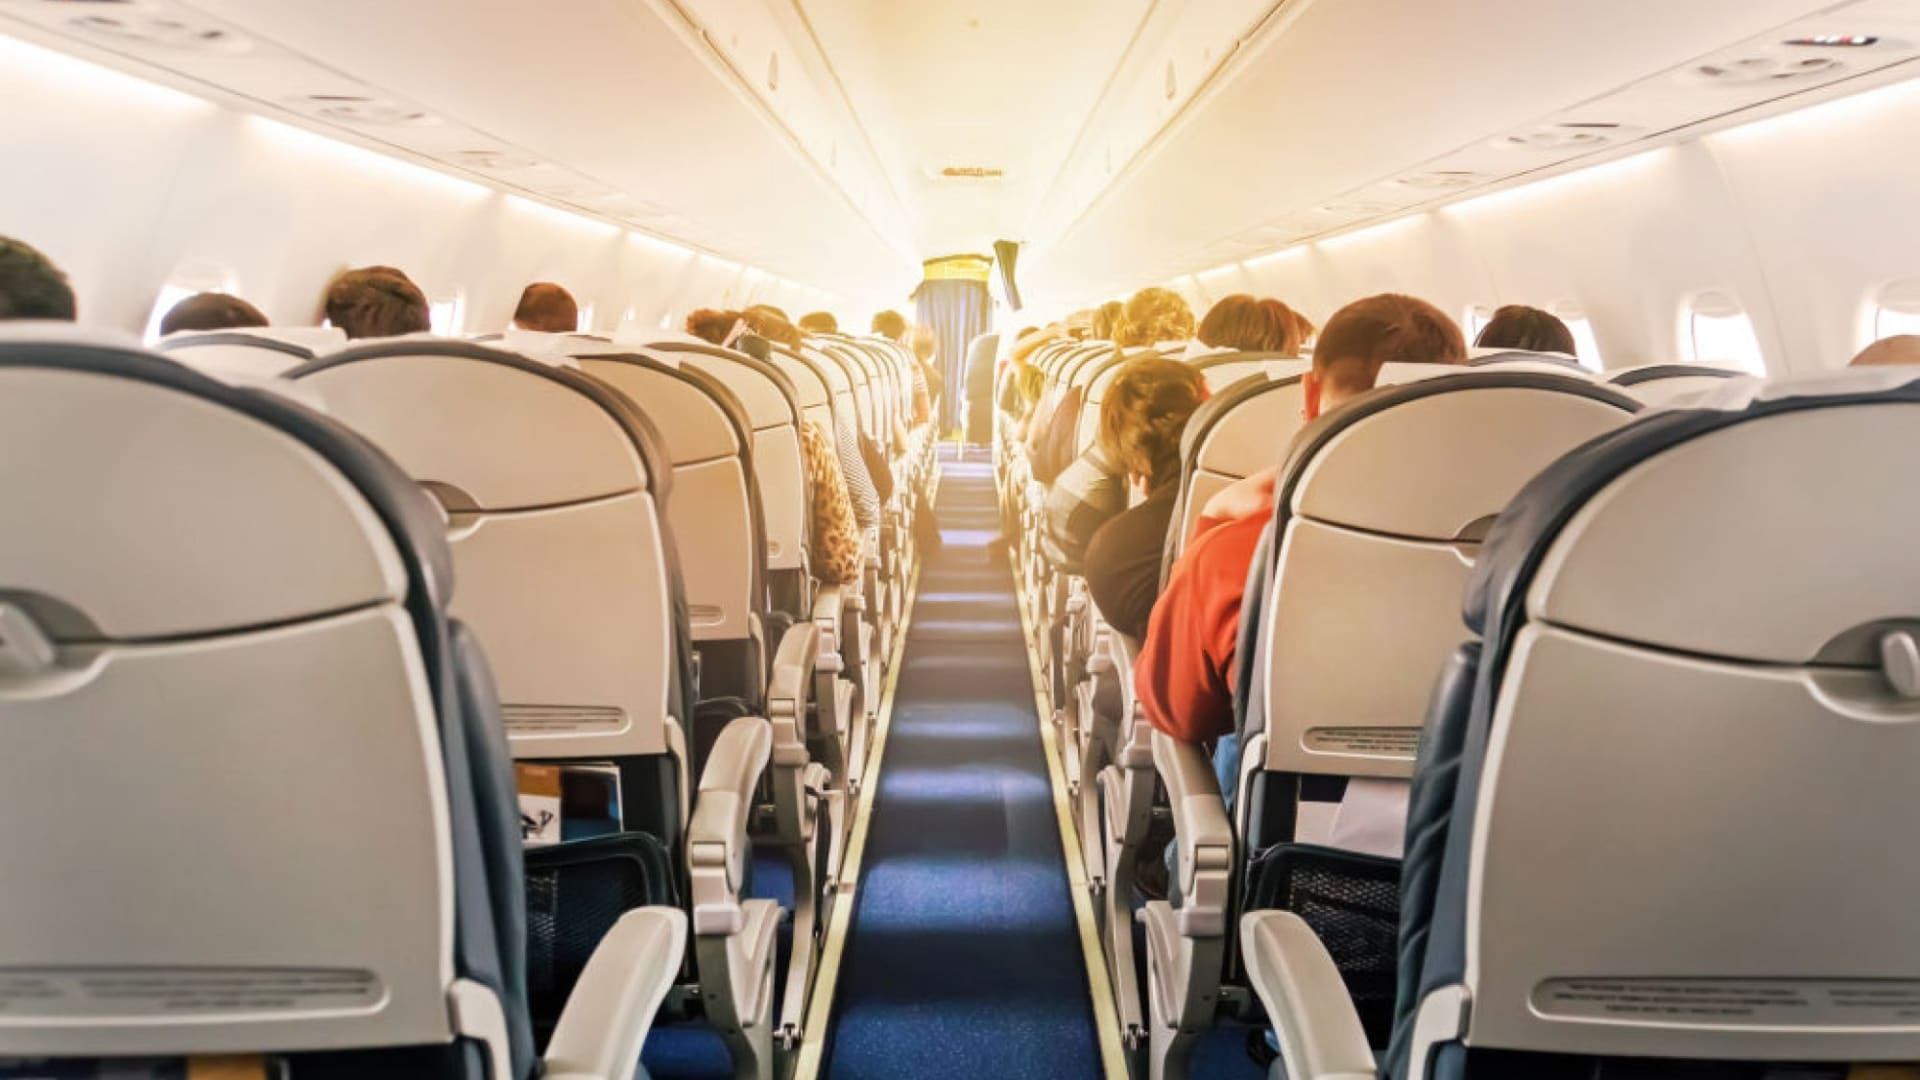 What Do Airplane Bathrooms and Getting Hacked Have in Common?